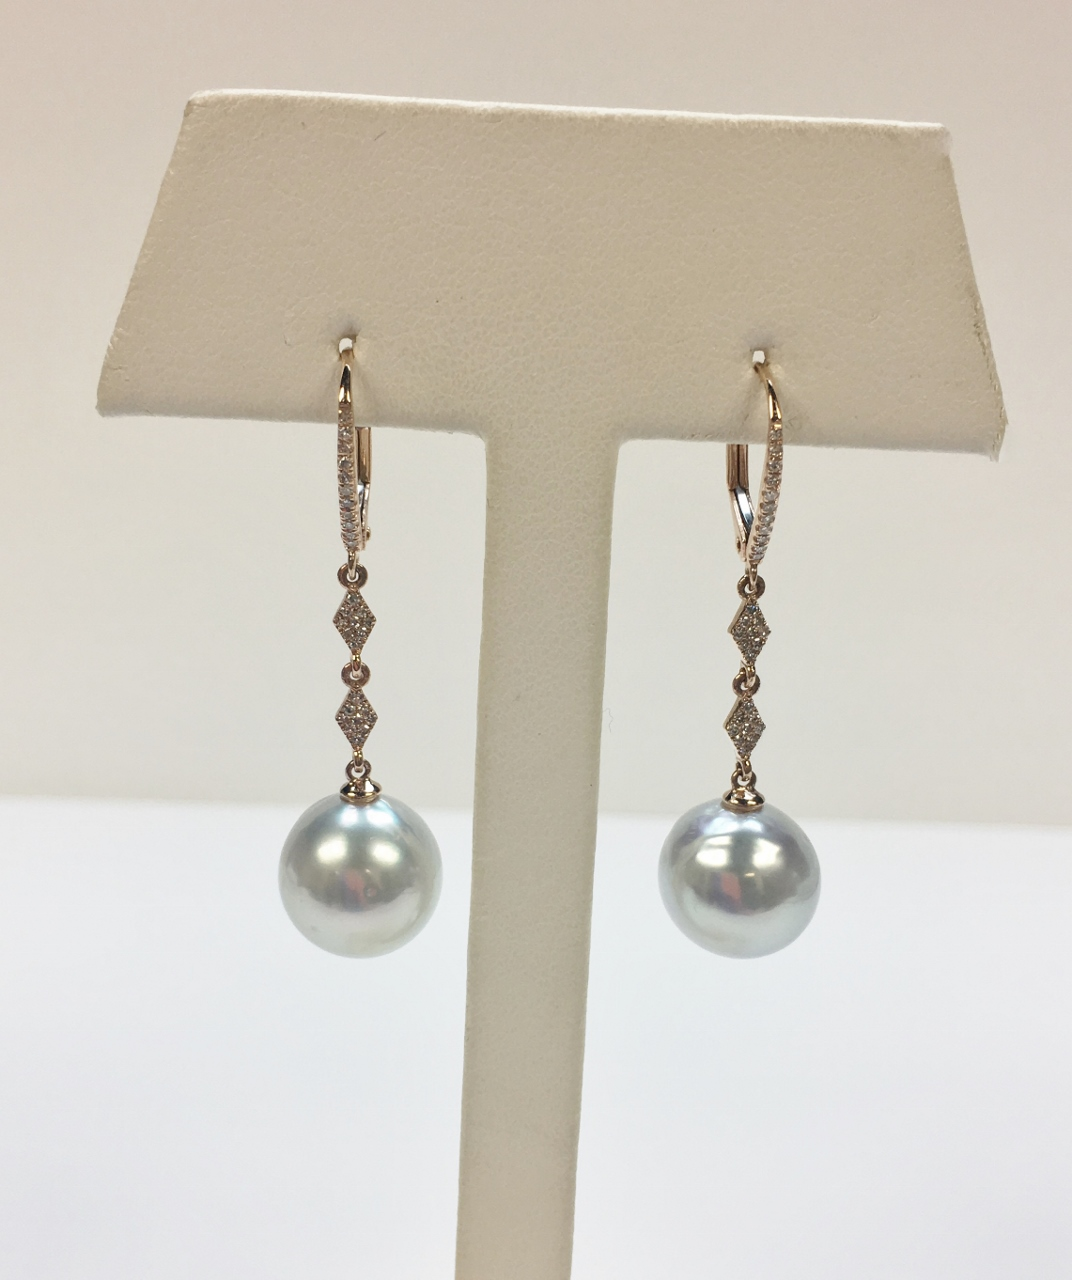 Rose Gold South Sea Pearl Dangling Earrings